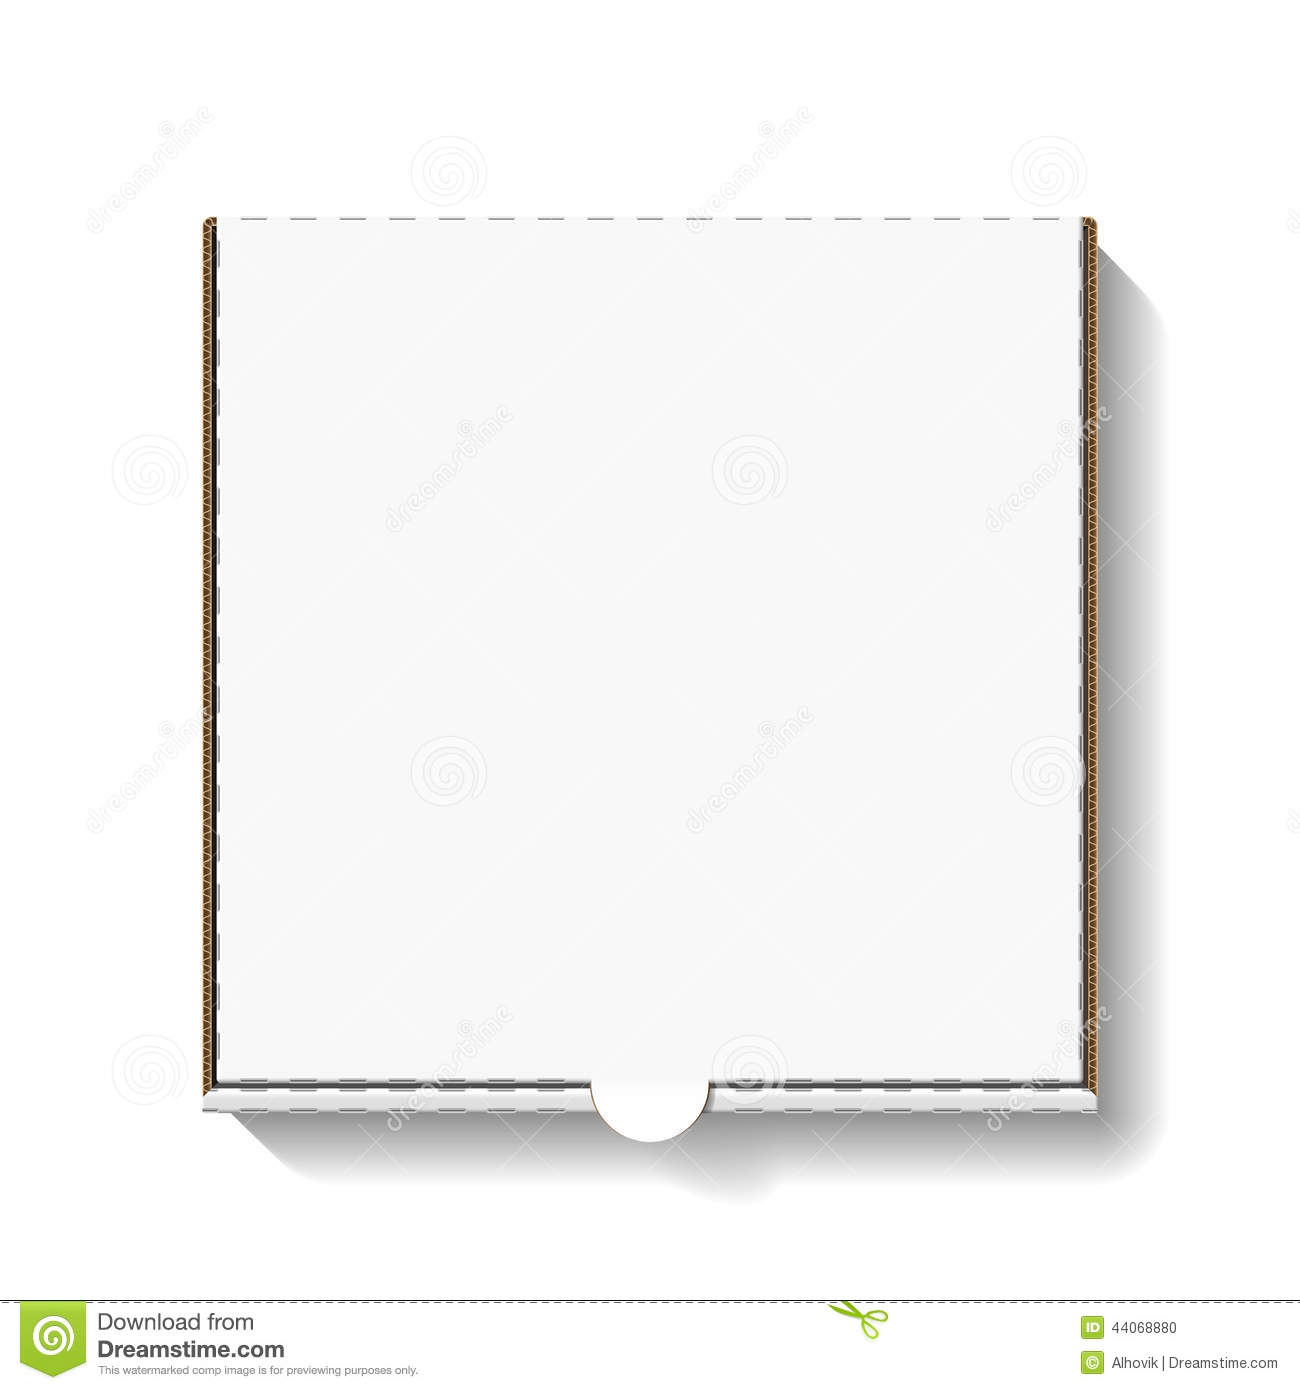 Line Art Box Design : Cardboard pizza box stock vector image of blank